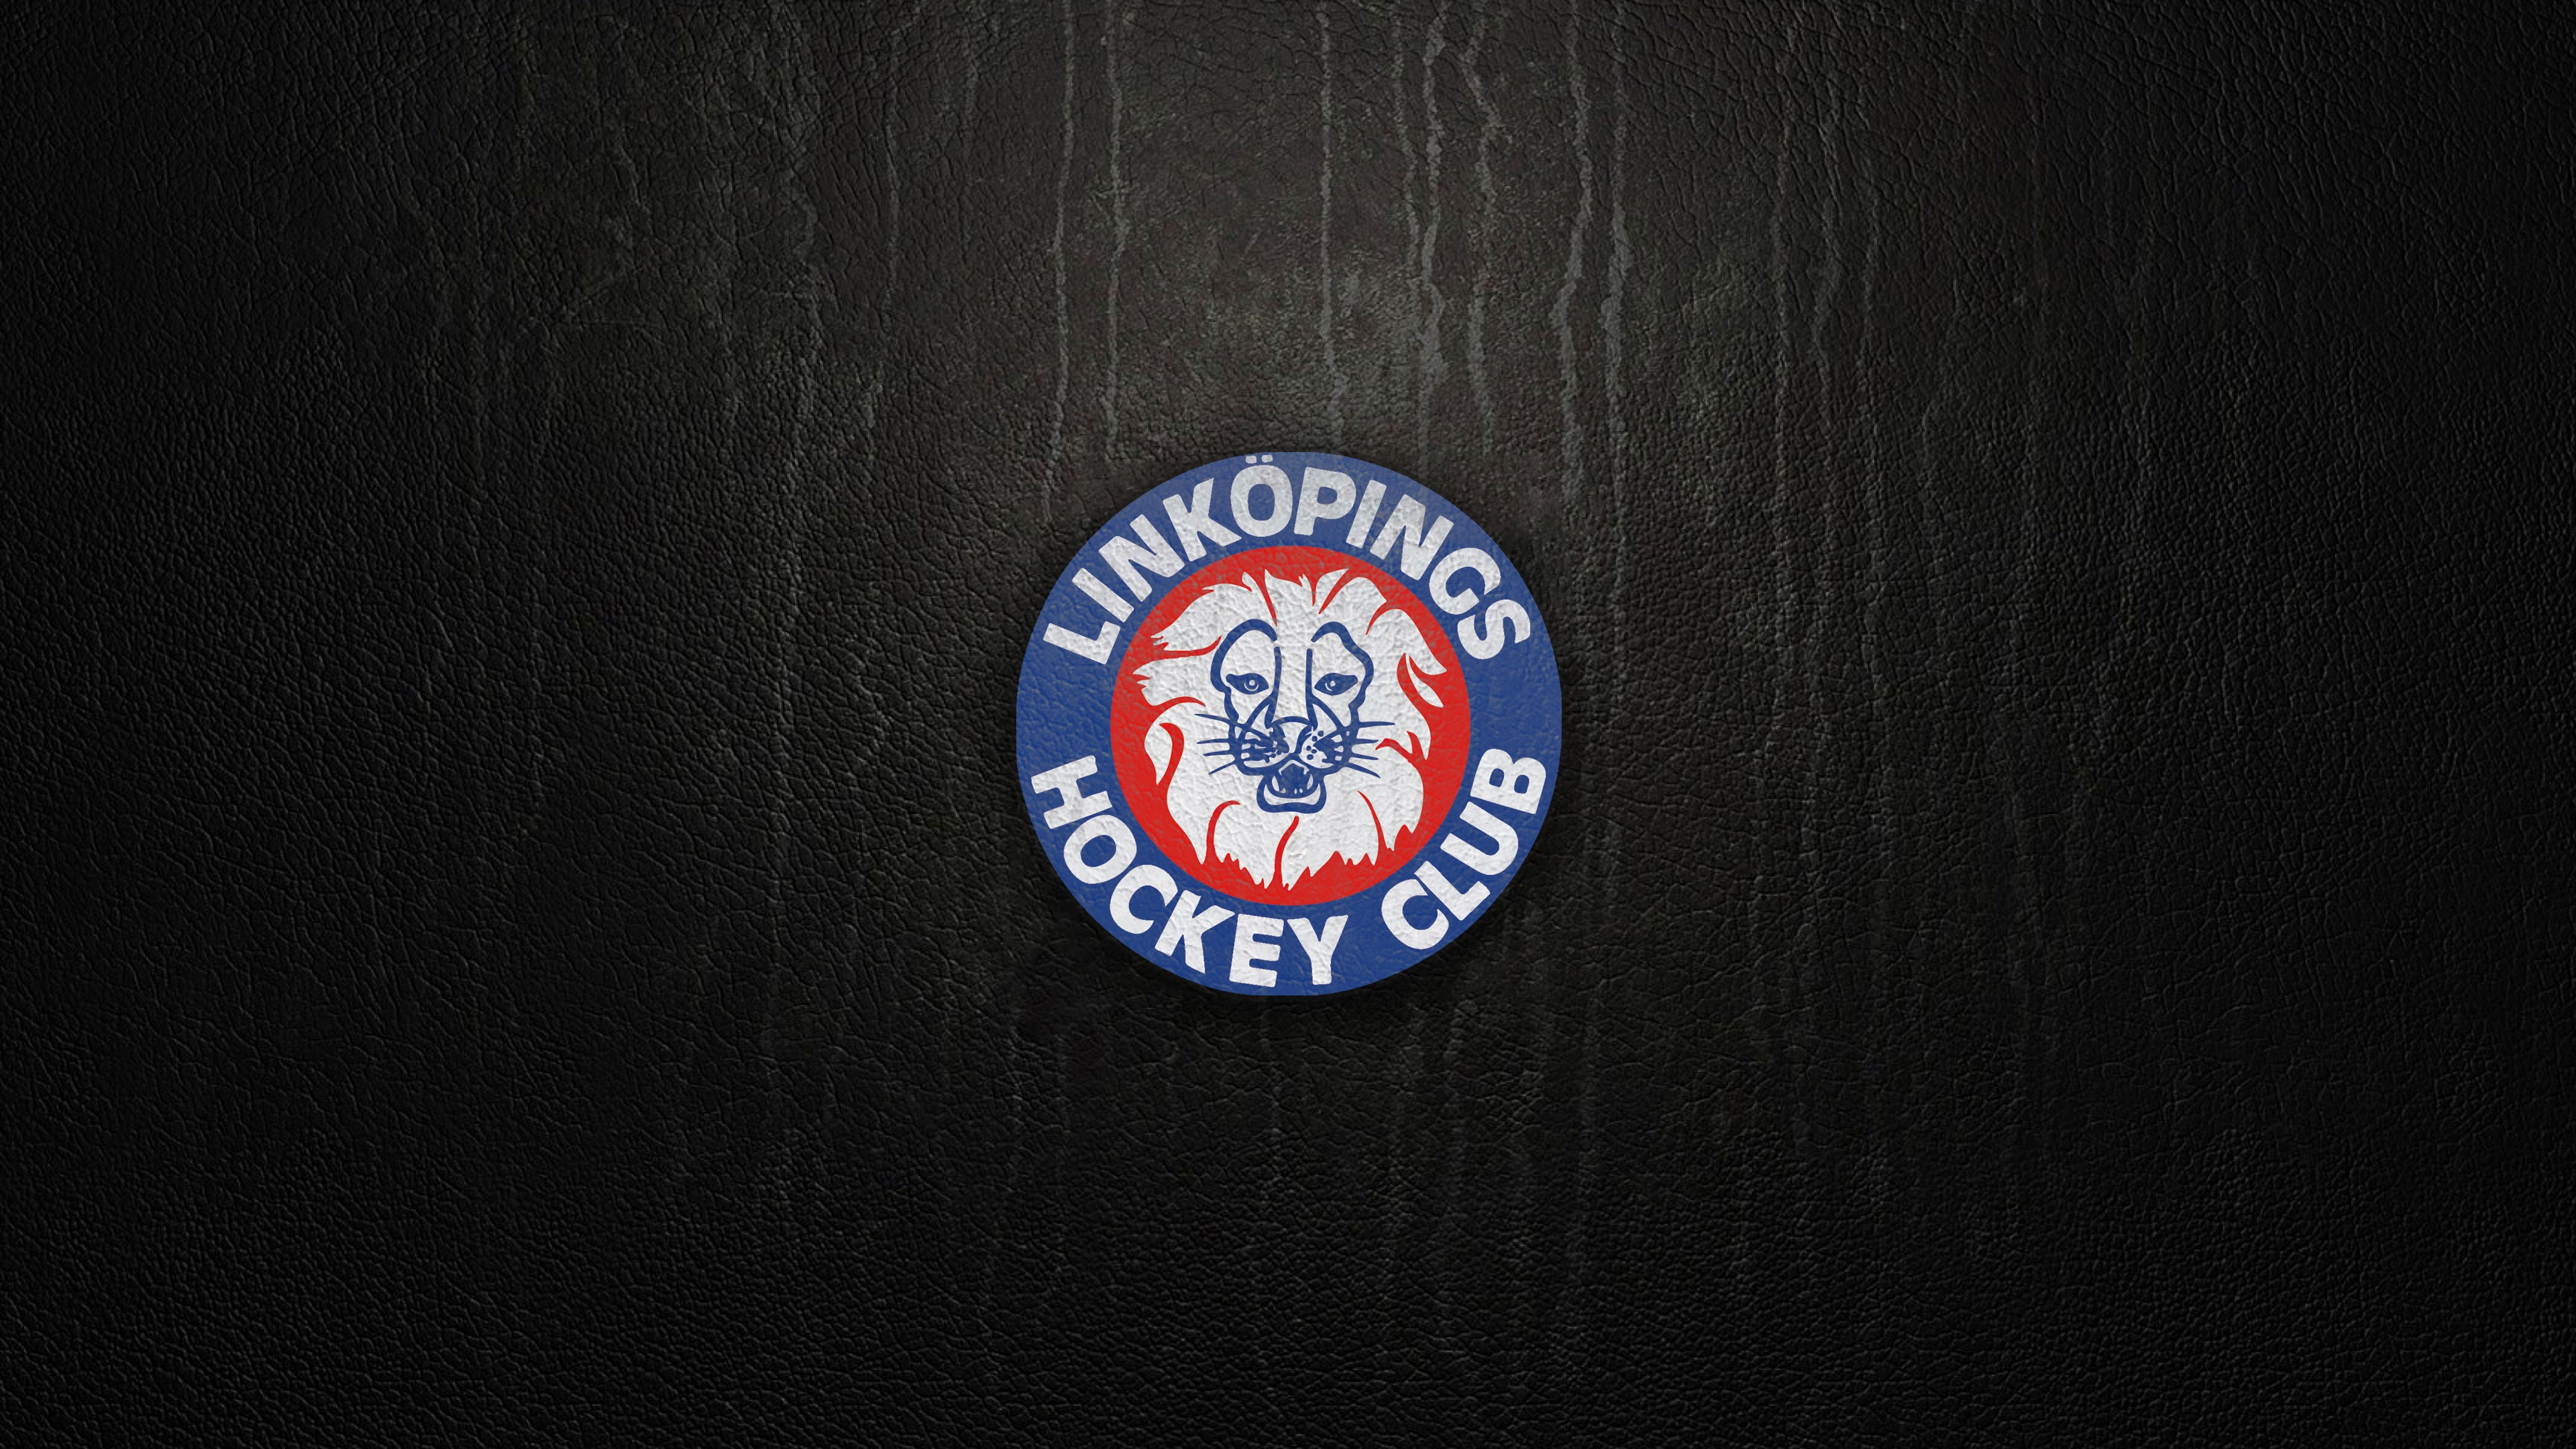 Linkopings Hockey Club